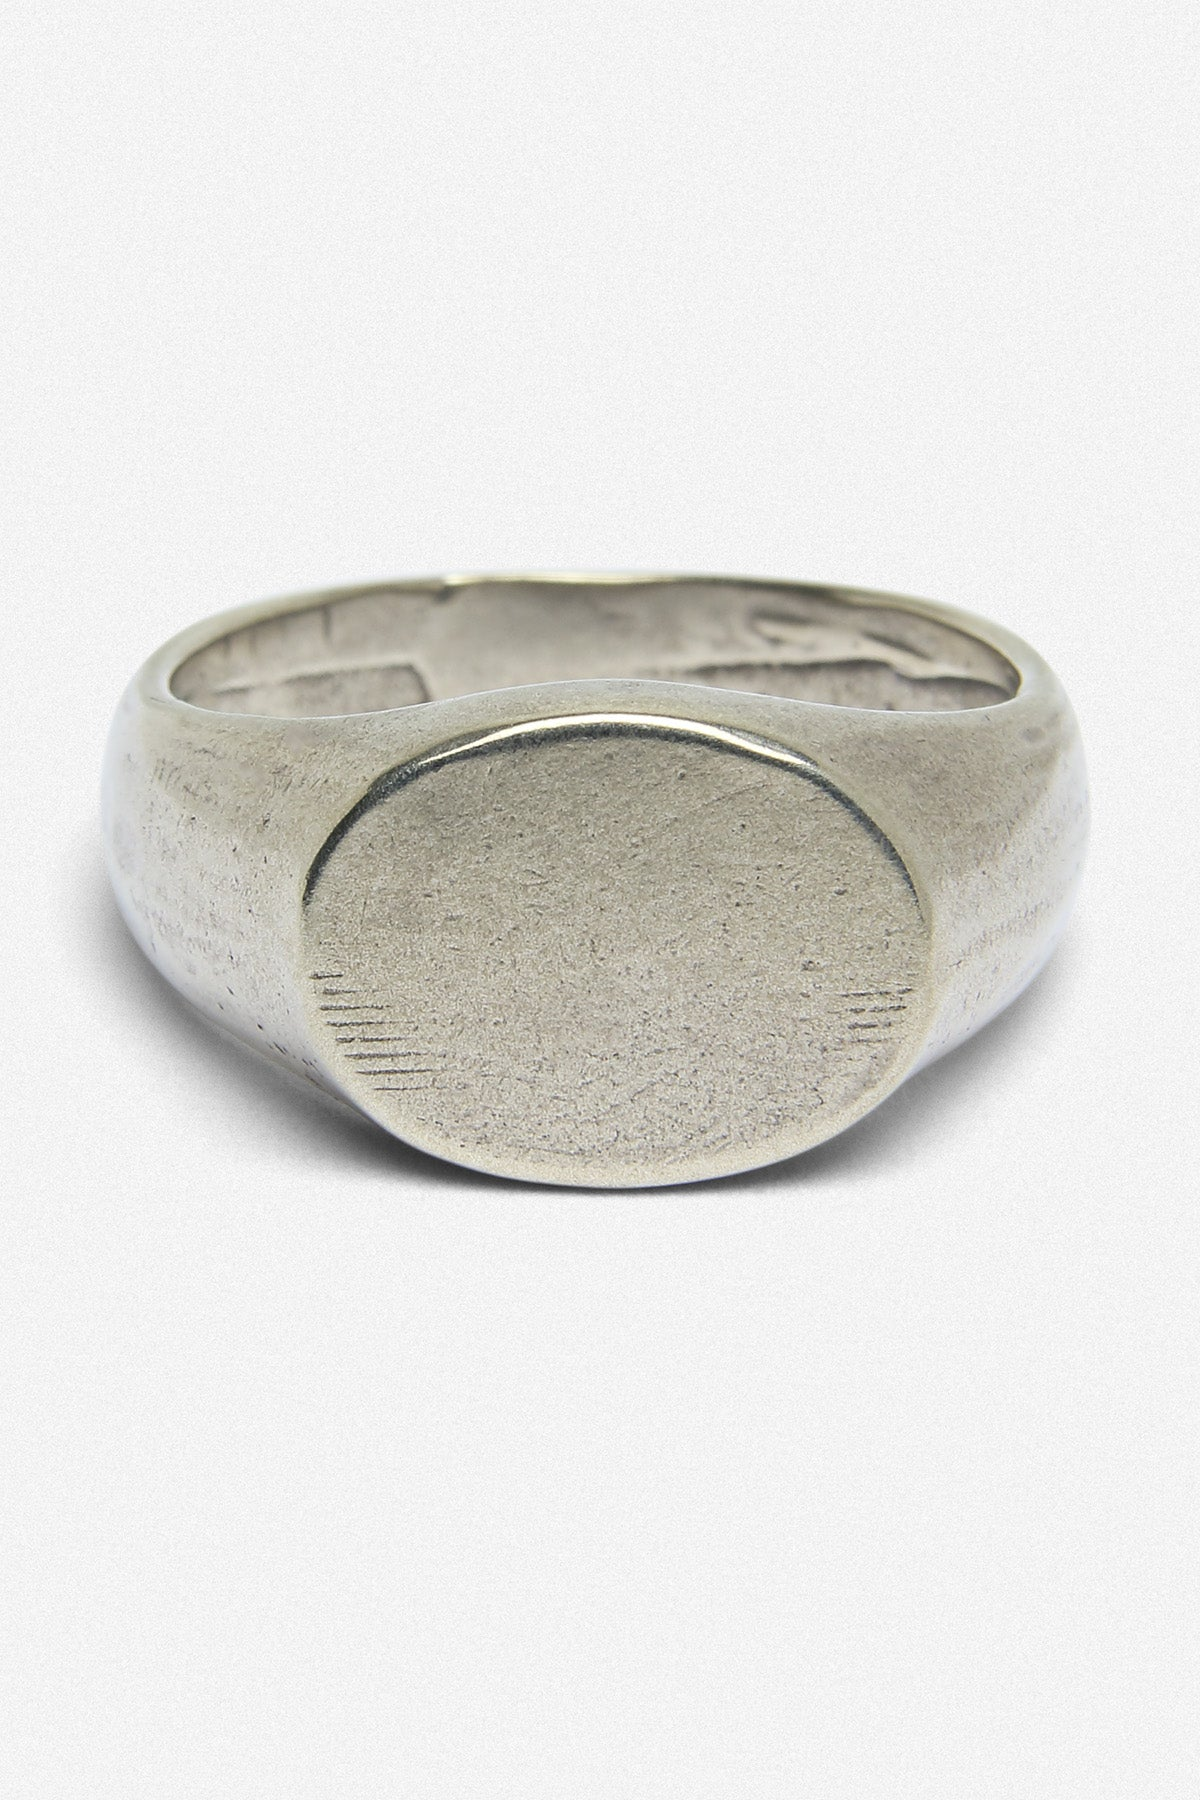 SIGNET OVAL RING IN WHITE BRONZE - Fortune Goods